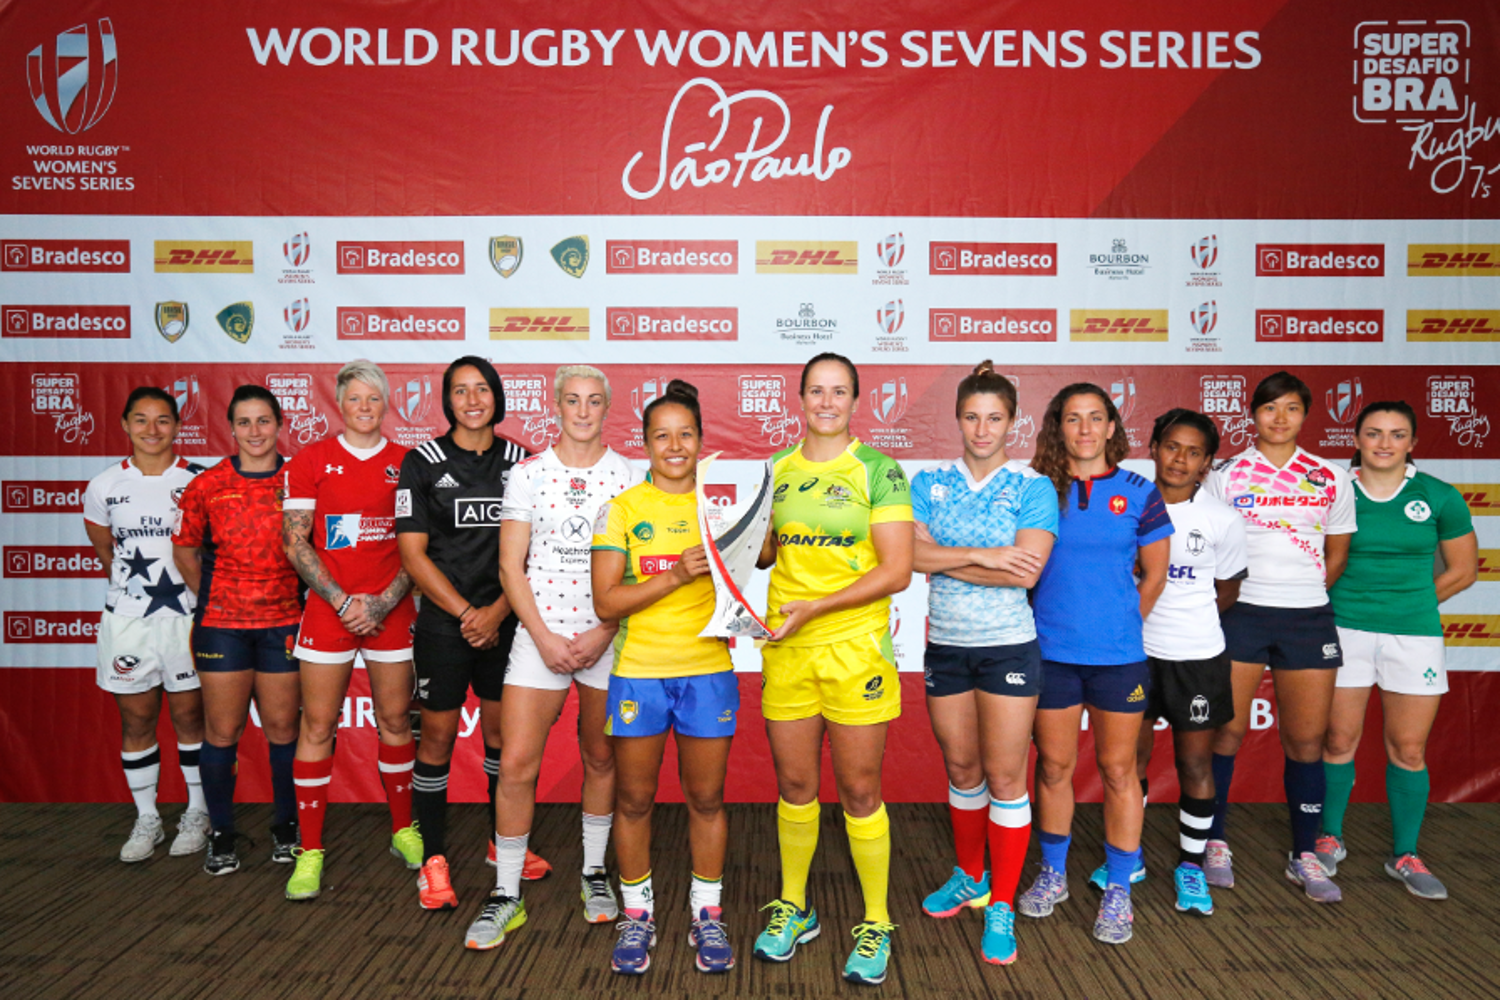 Women's Sevens Series captains- Sao Paulo